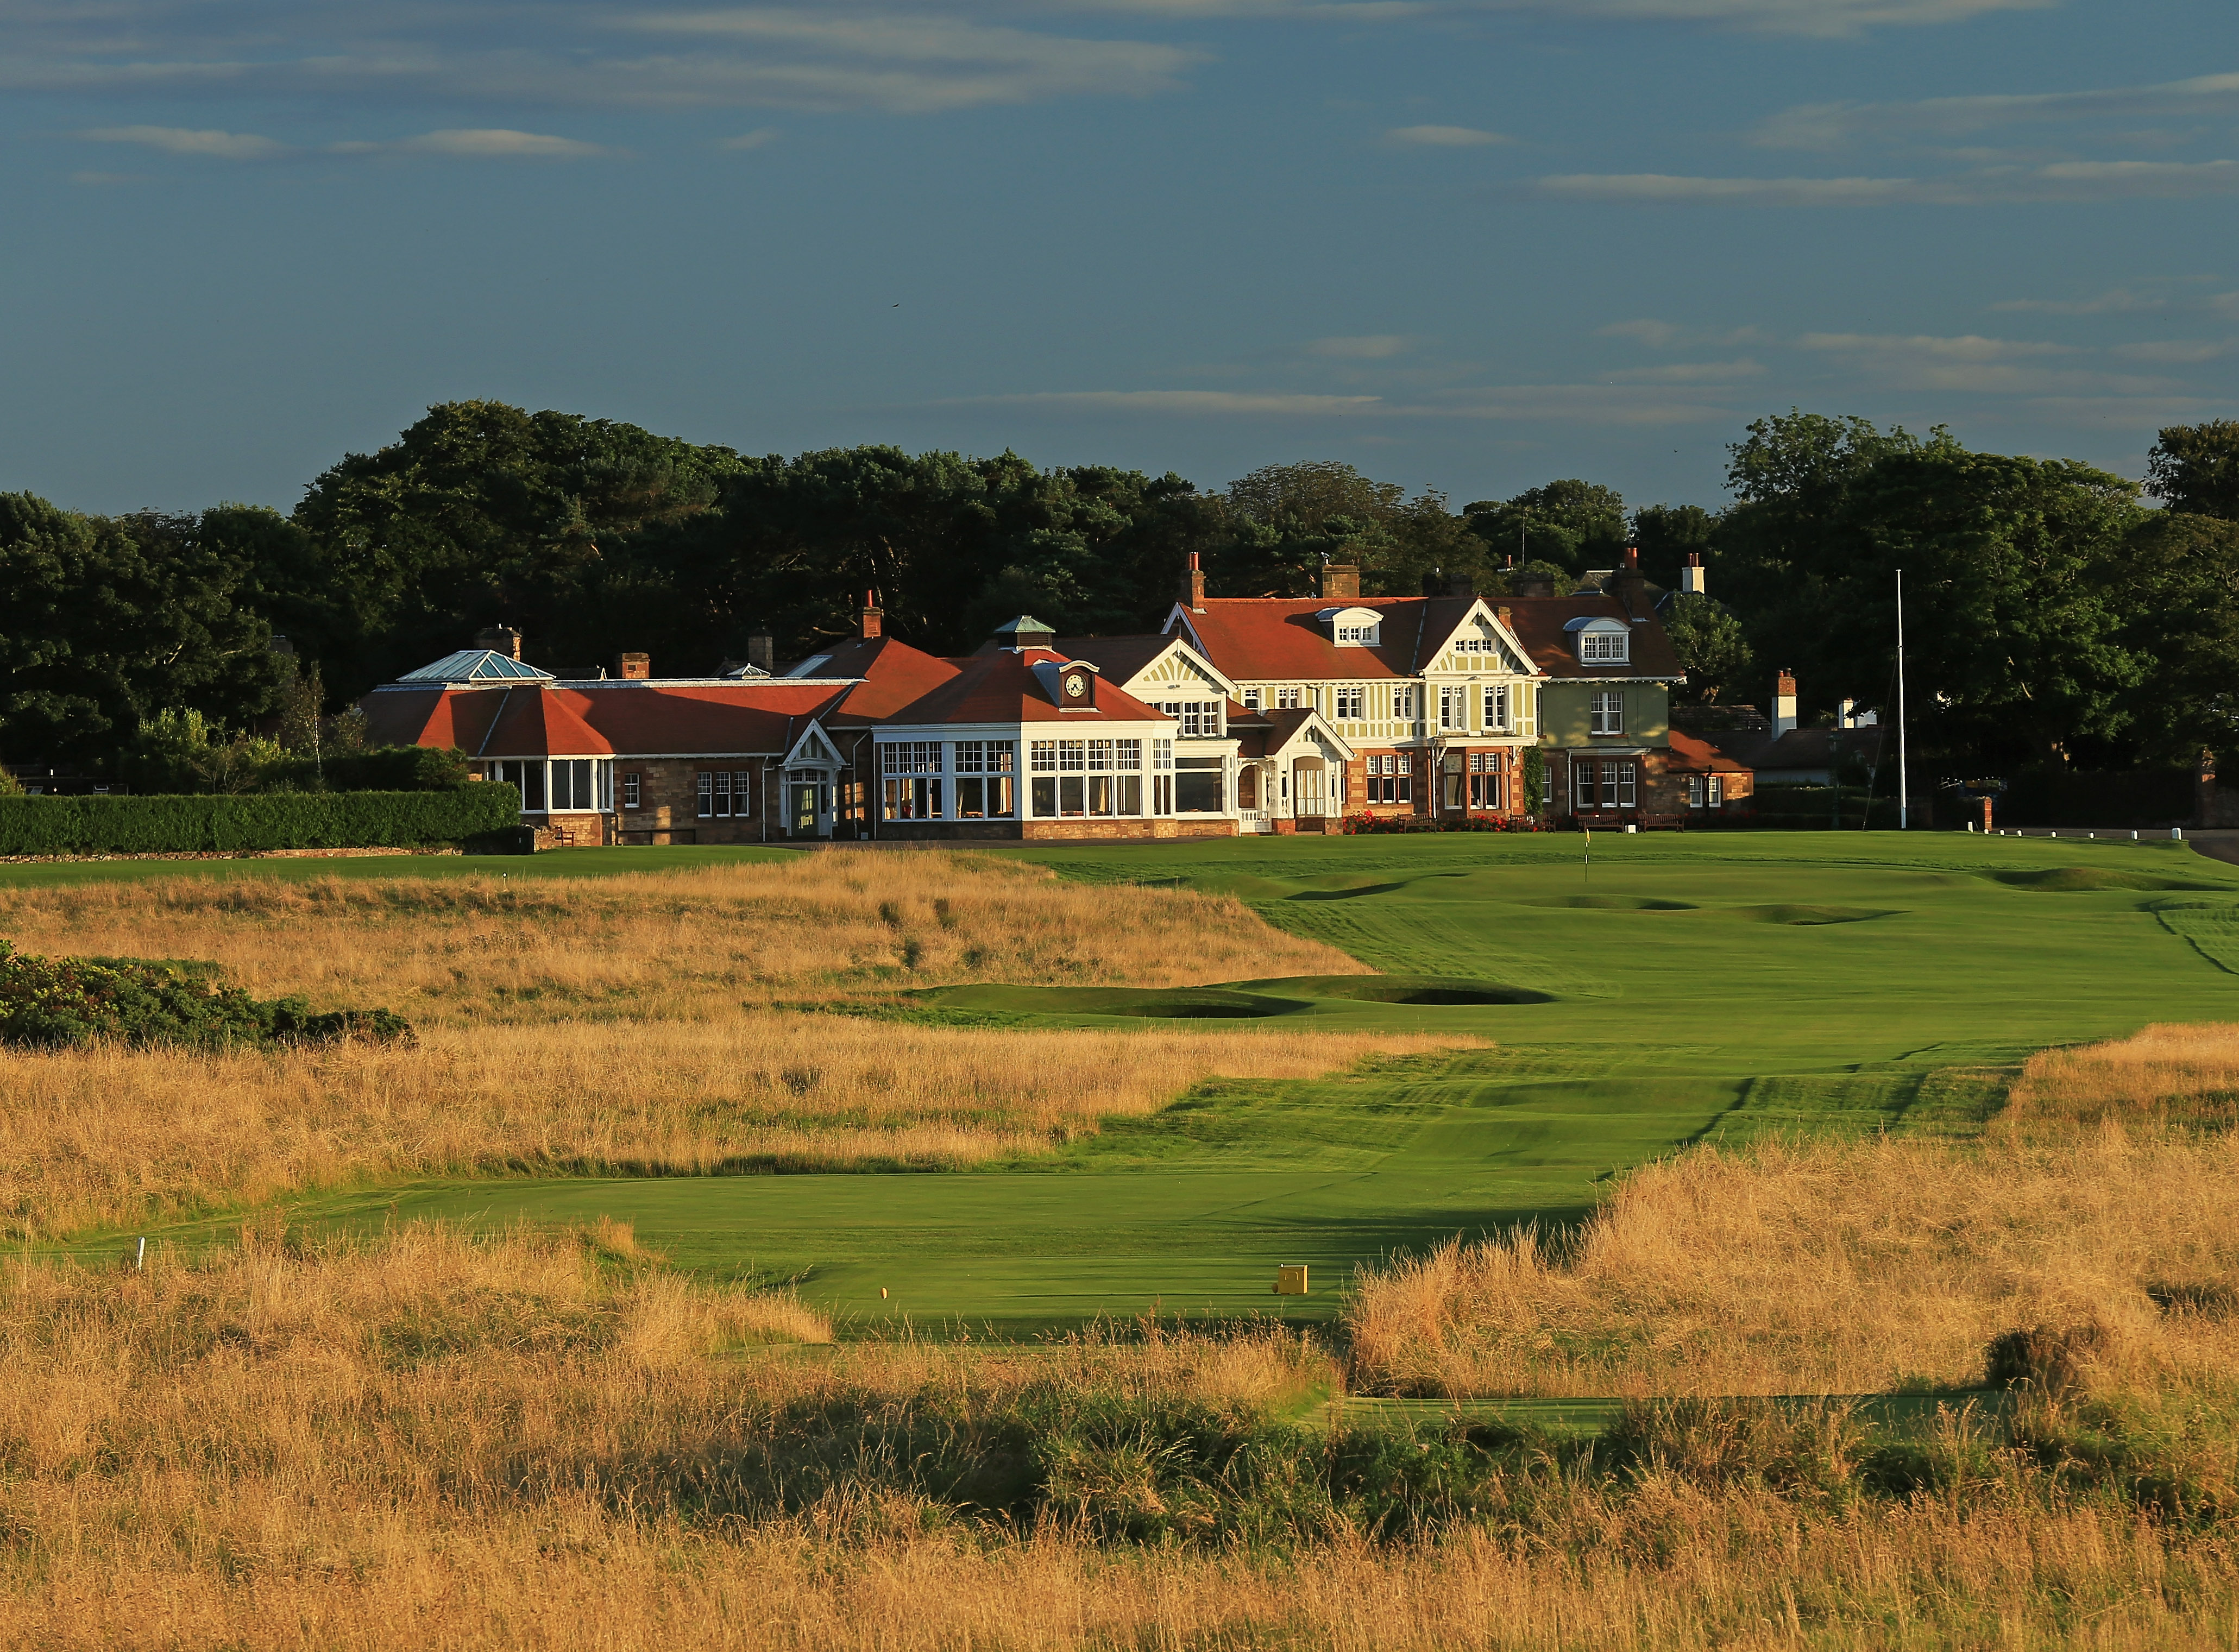 Muirfield has hosted The Open Championship 16 times, most recently in 2013.